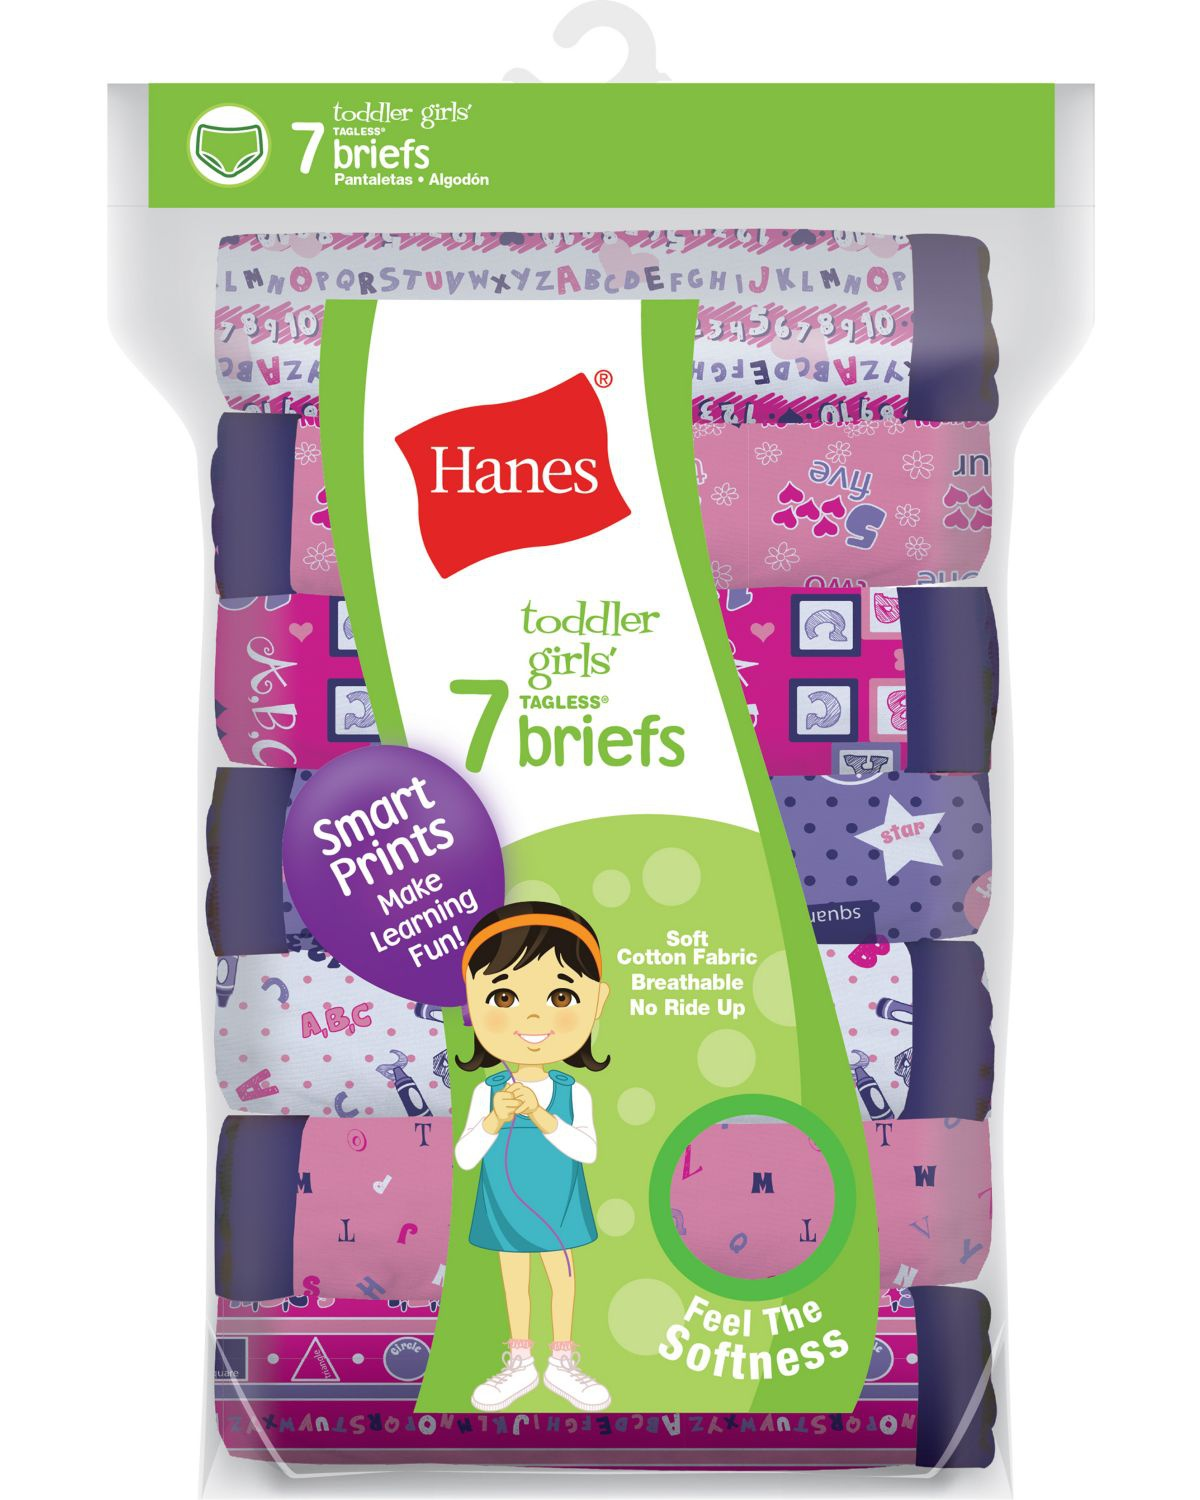 'Hanes GTHMT7 Tagless Toddler Girls Days of the Week Pre-Shrunk Cotton Briefs 7-Pack'